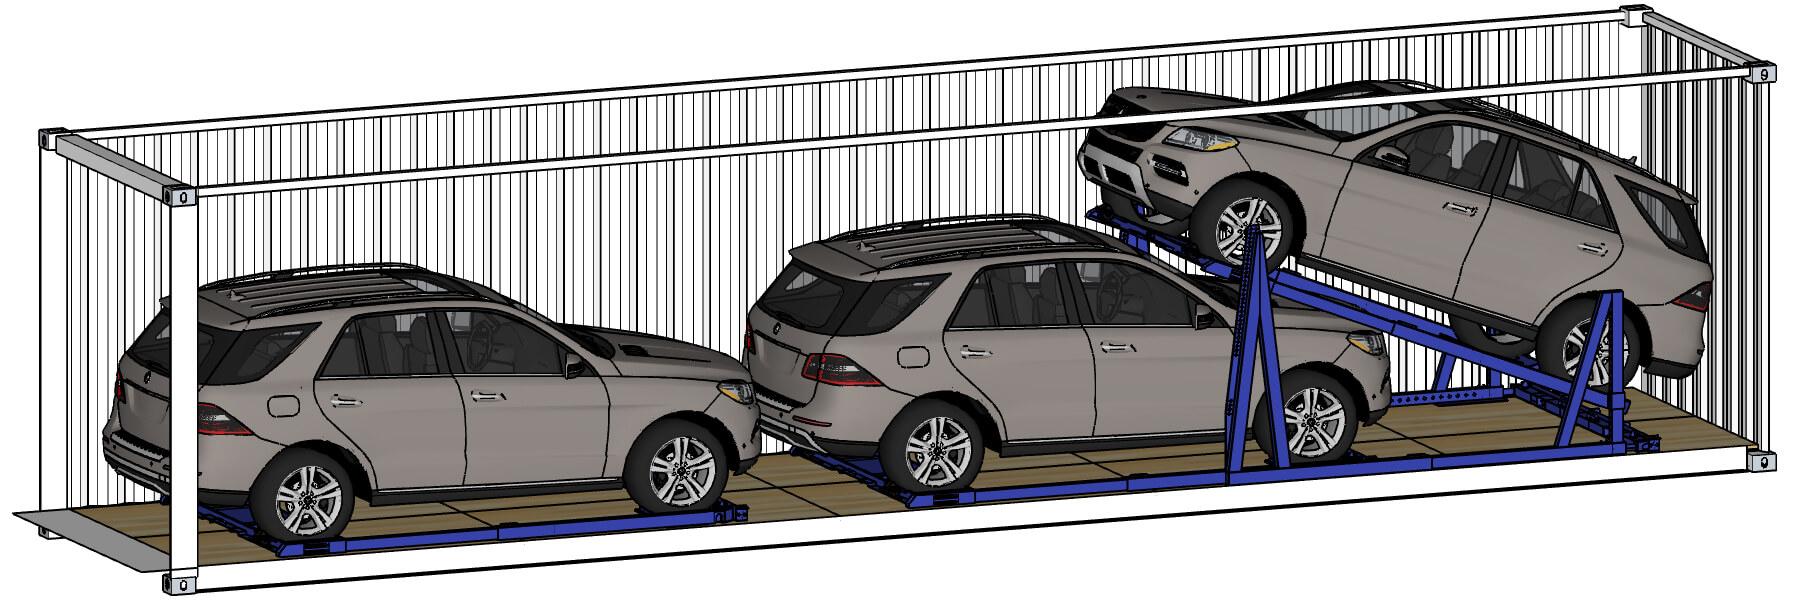 Exterior Loading Car Racking System